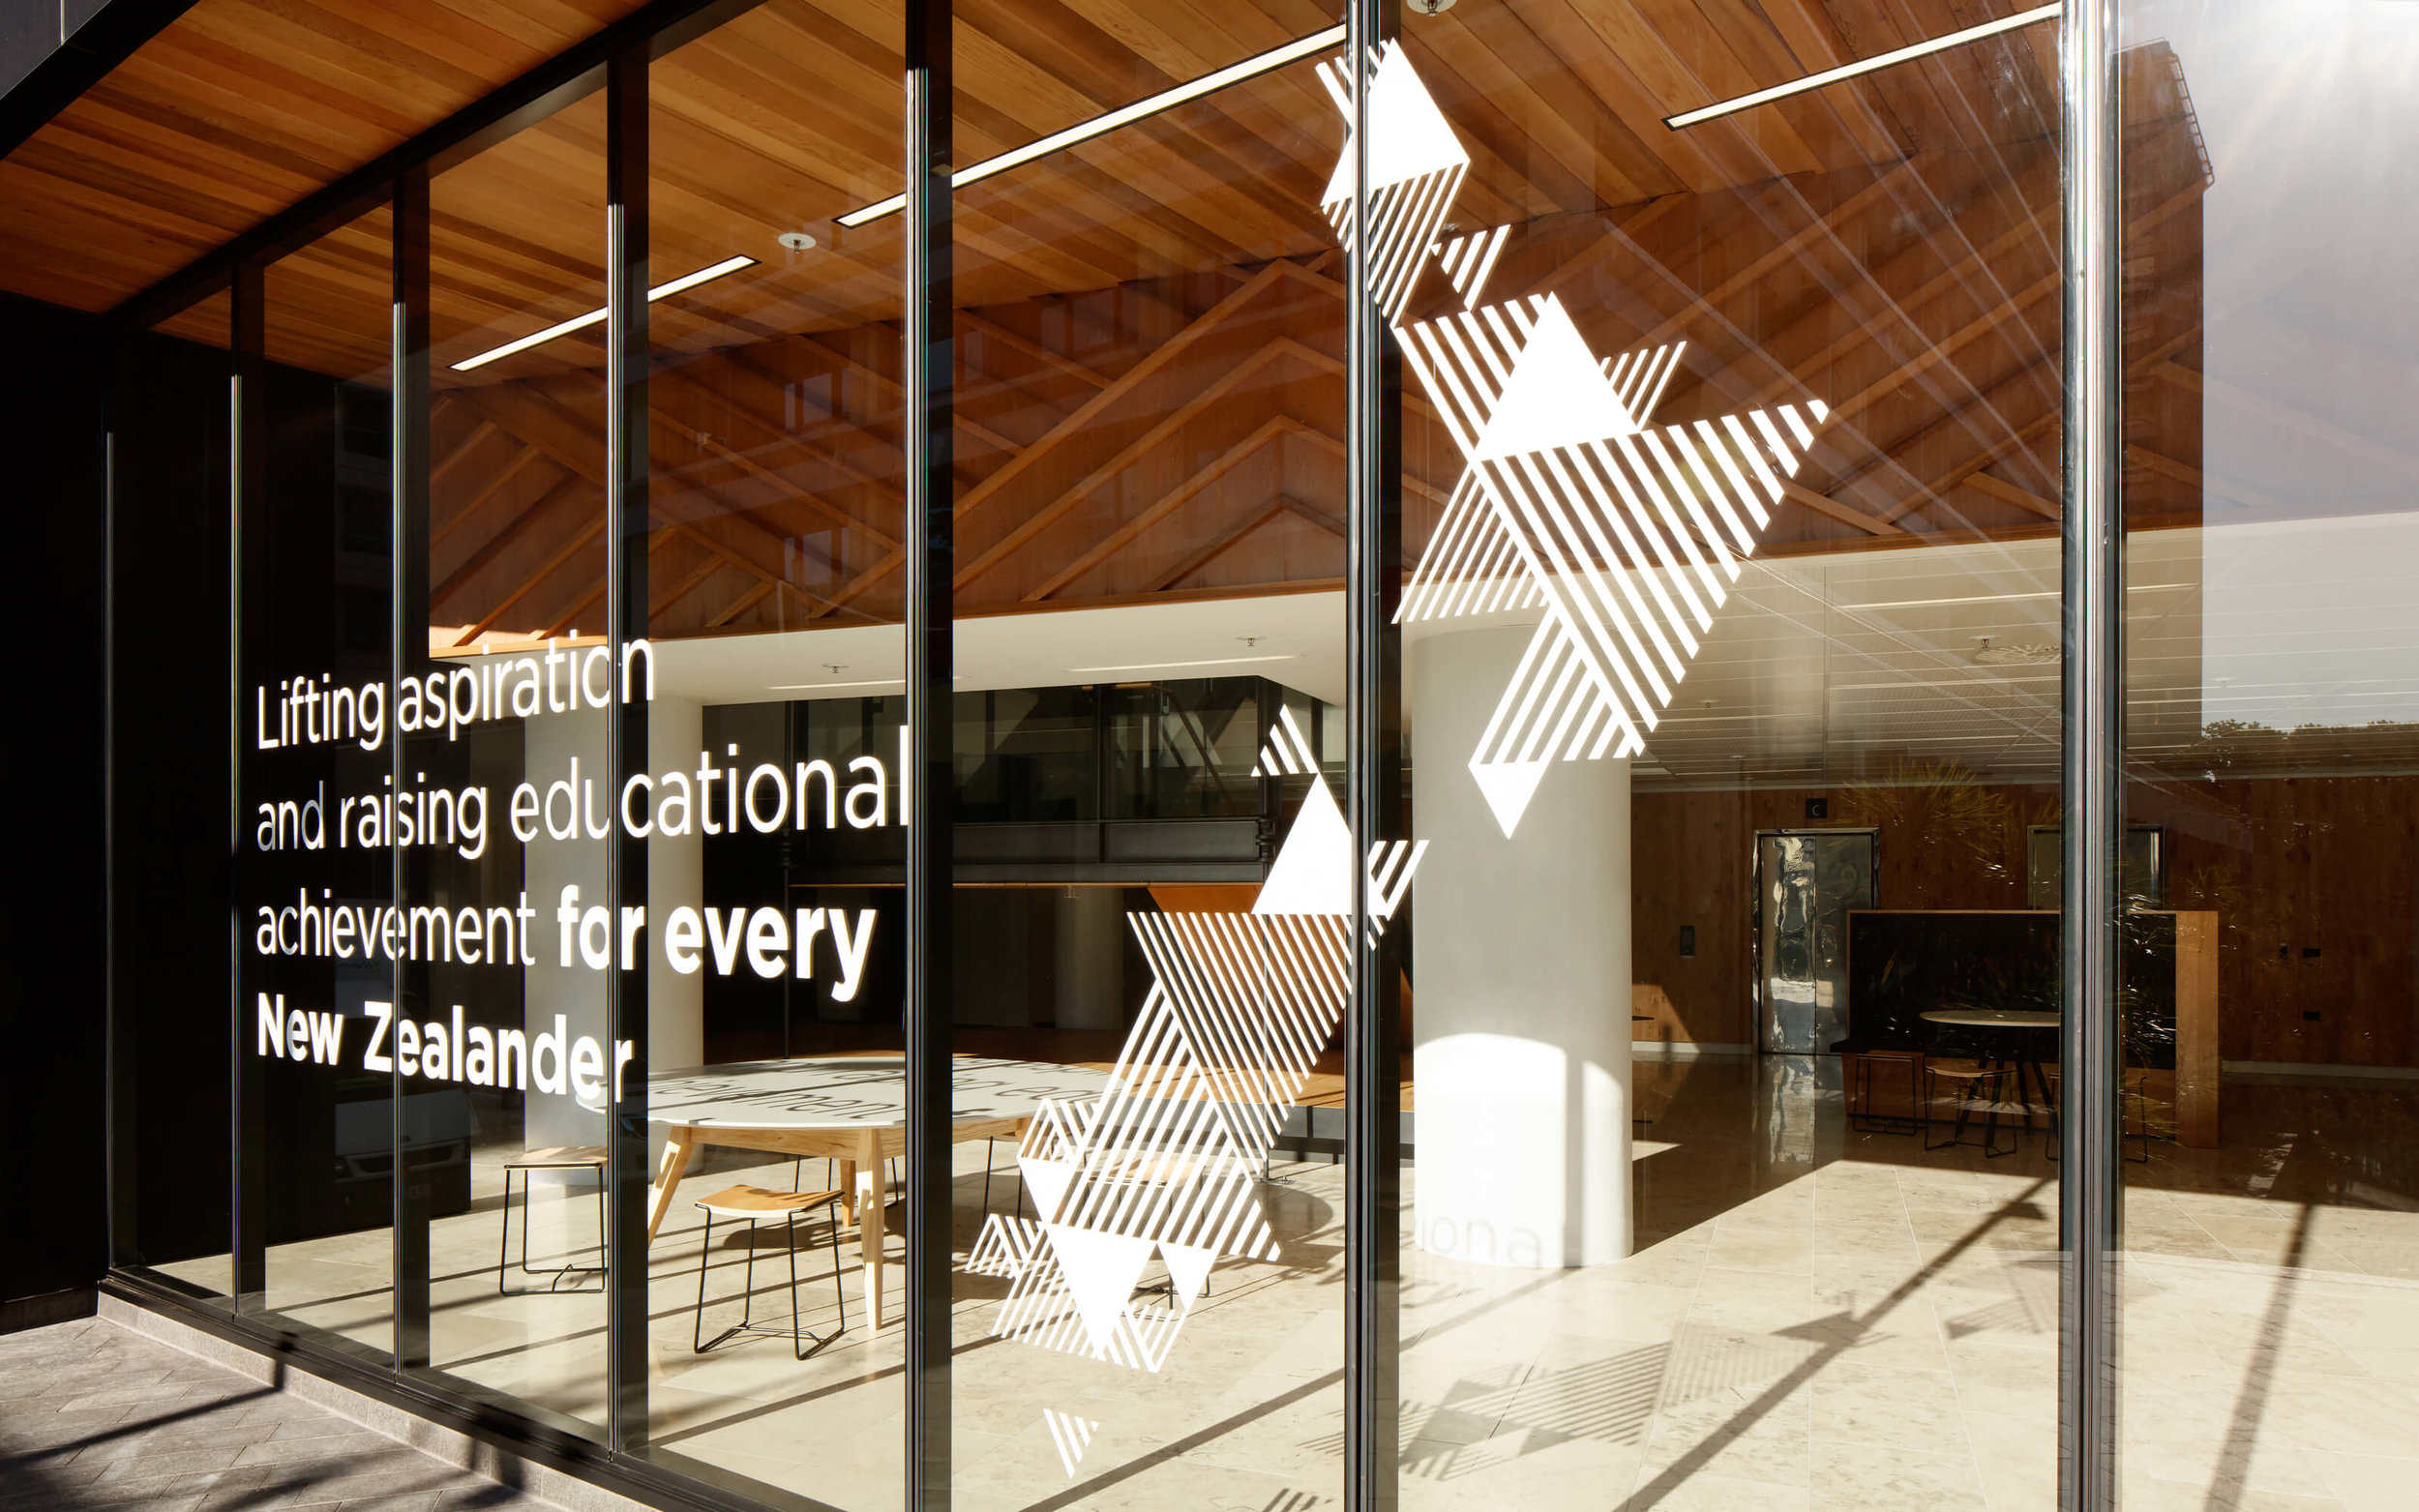 Weaving together New Zealand education